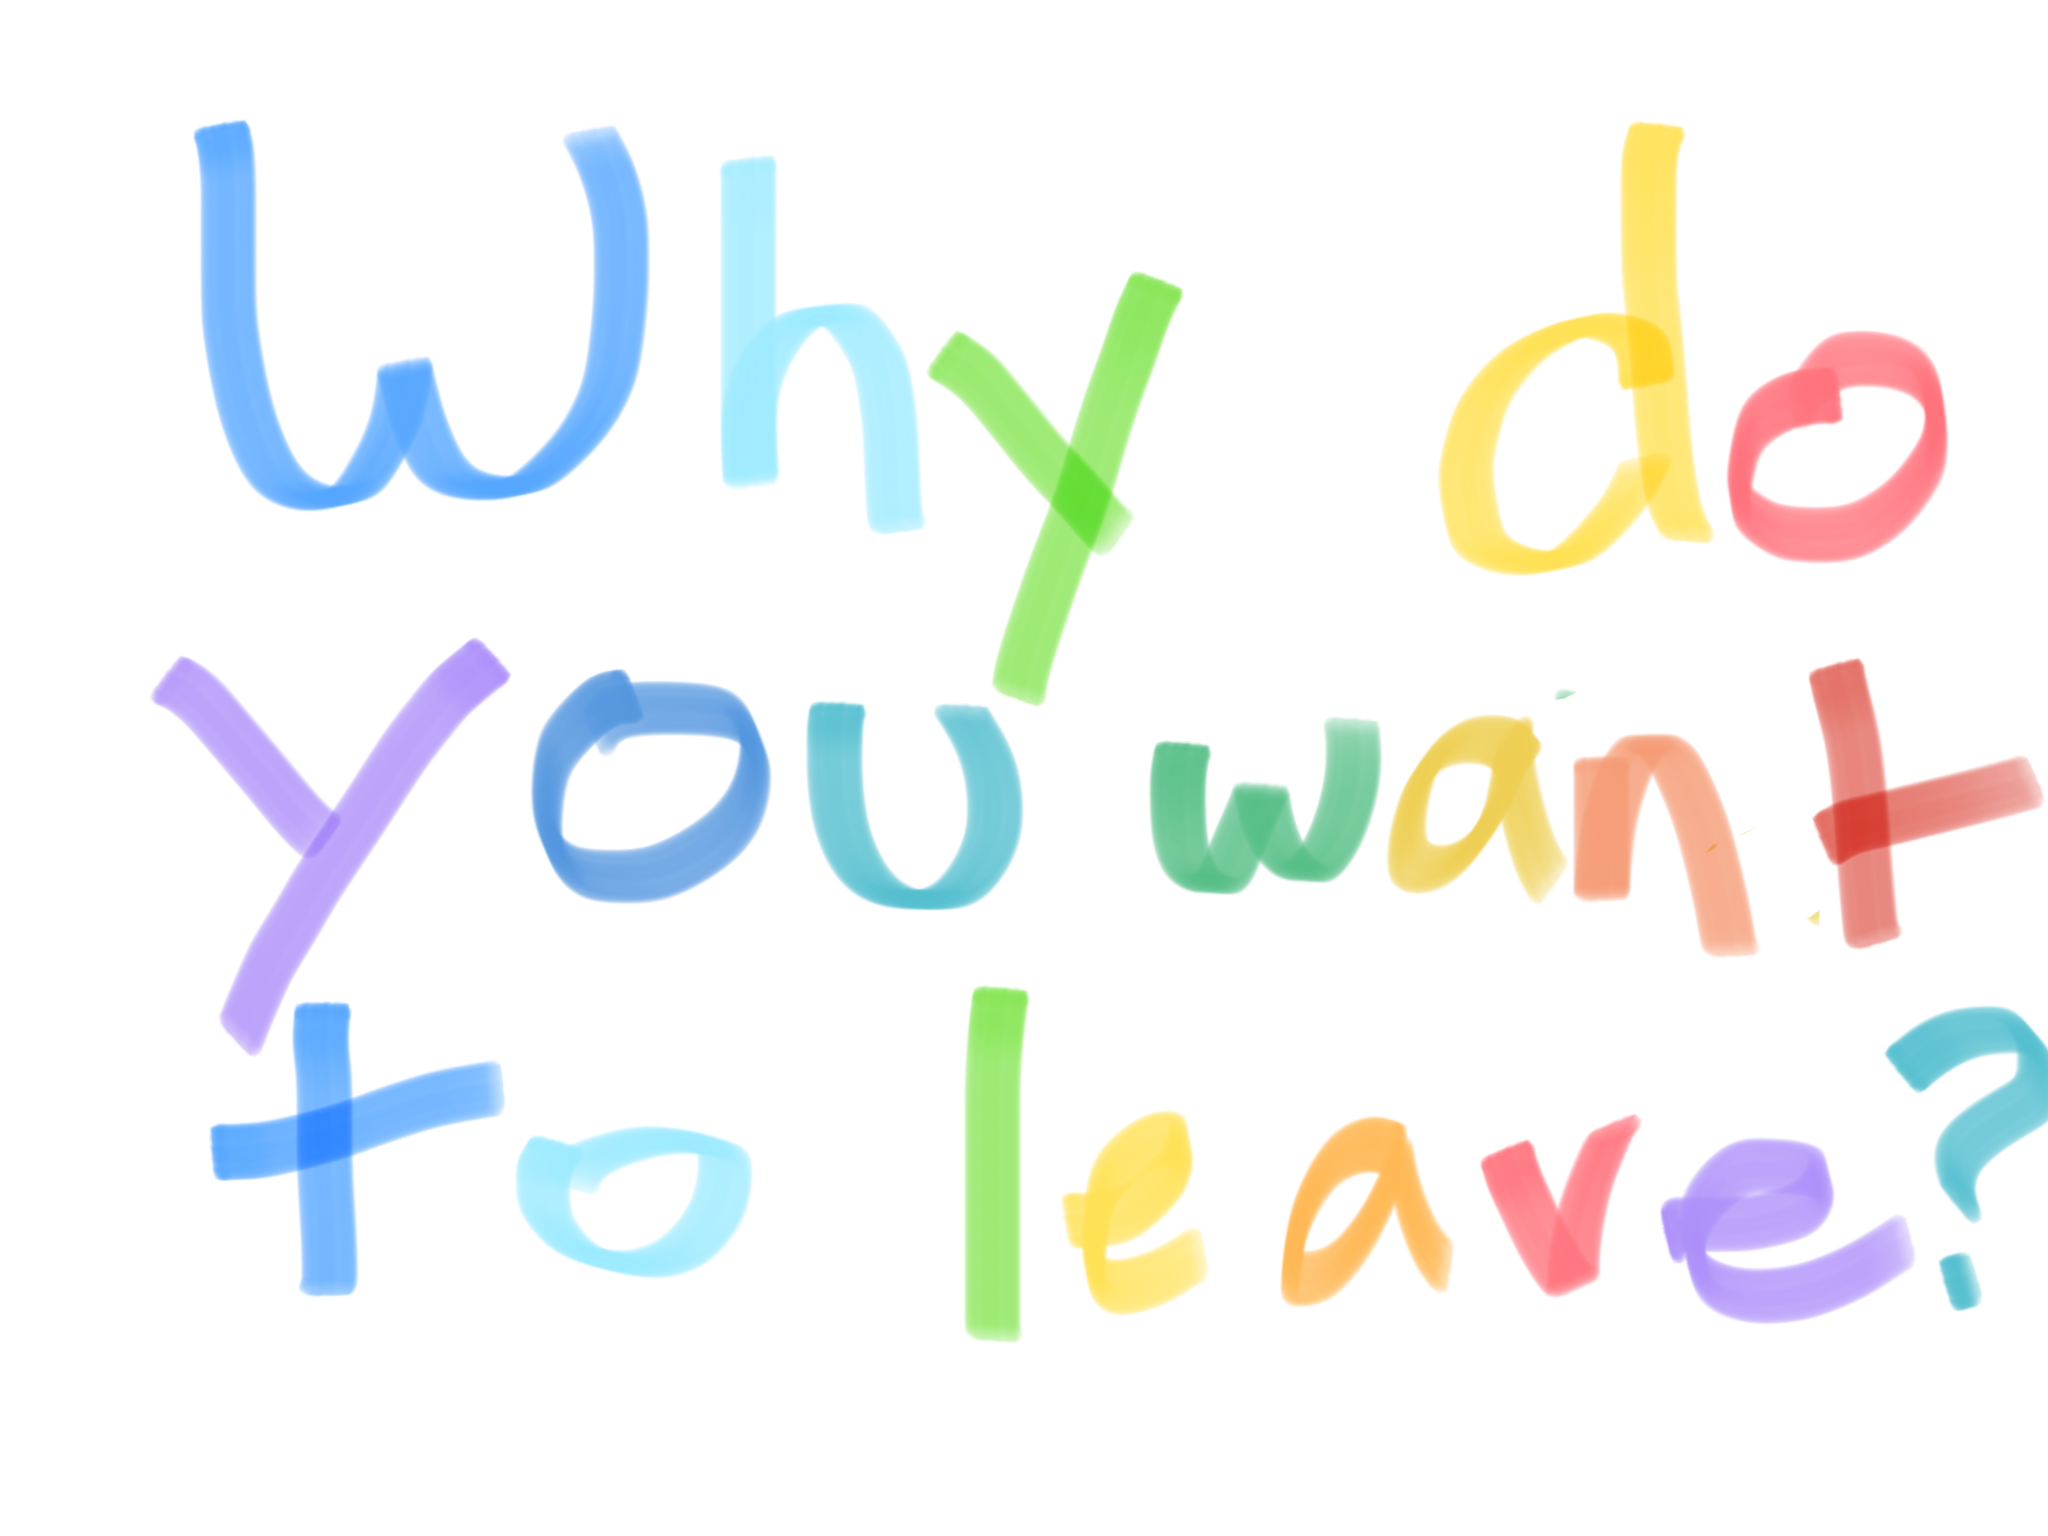 Do you want to leave?